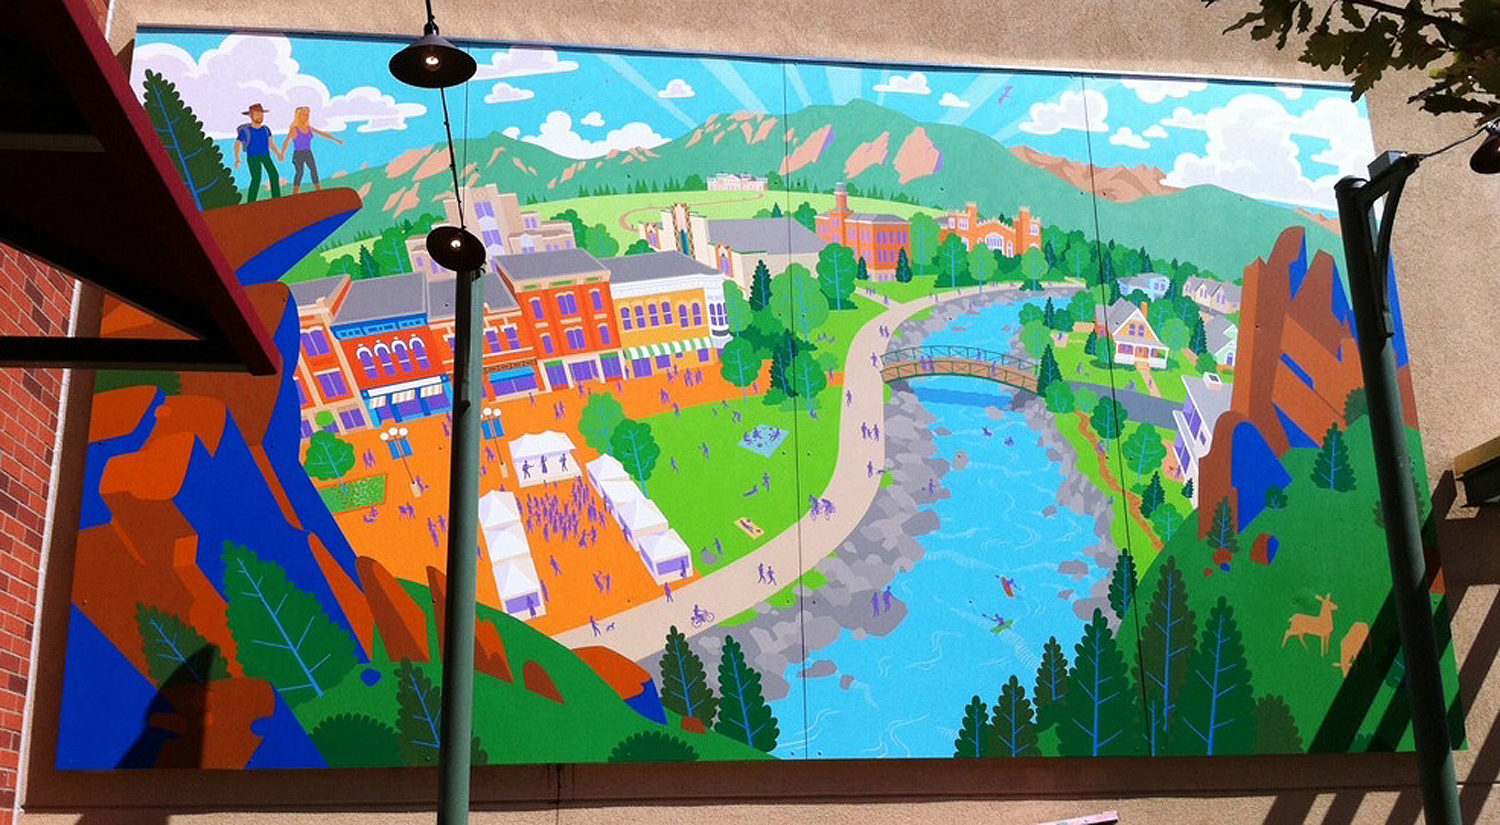 The mural is a fictional viewpoint combining many of Boulder's natural and architectural landmarks into a tribute to the town.